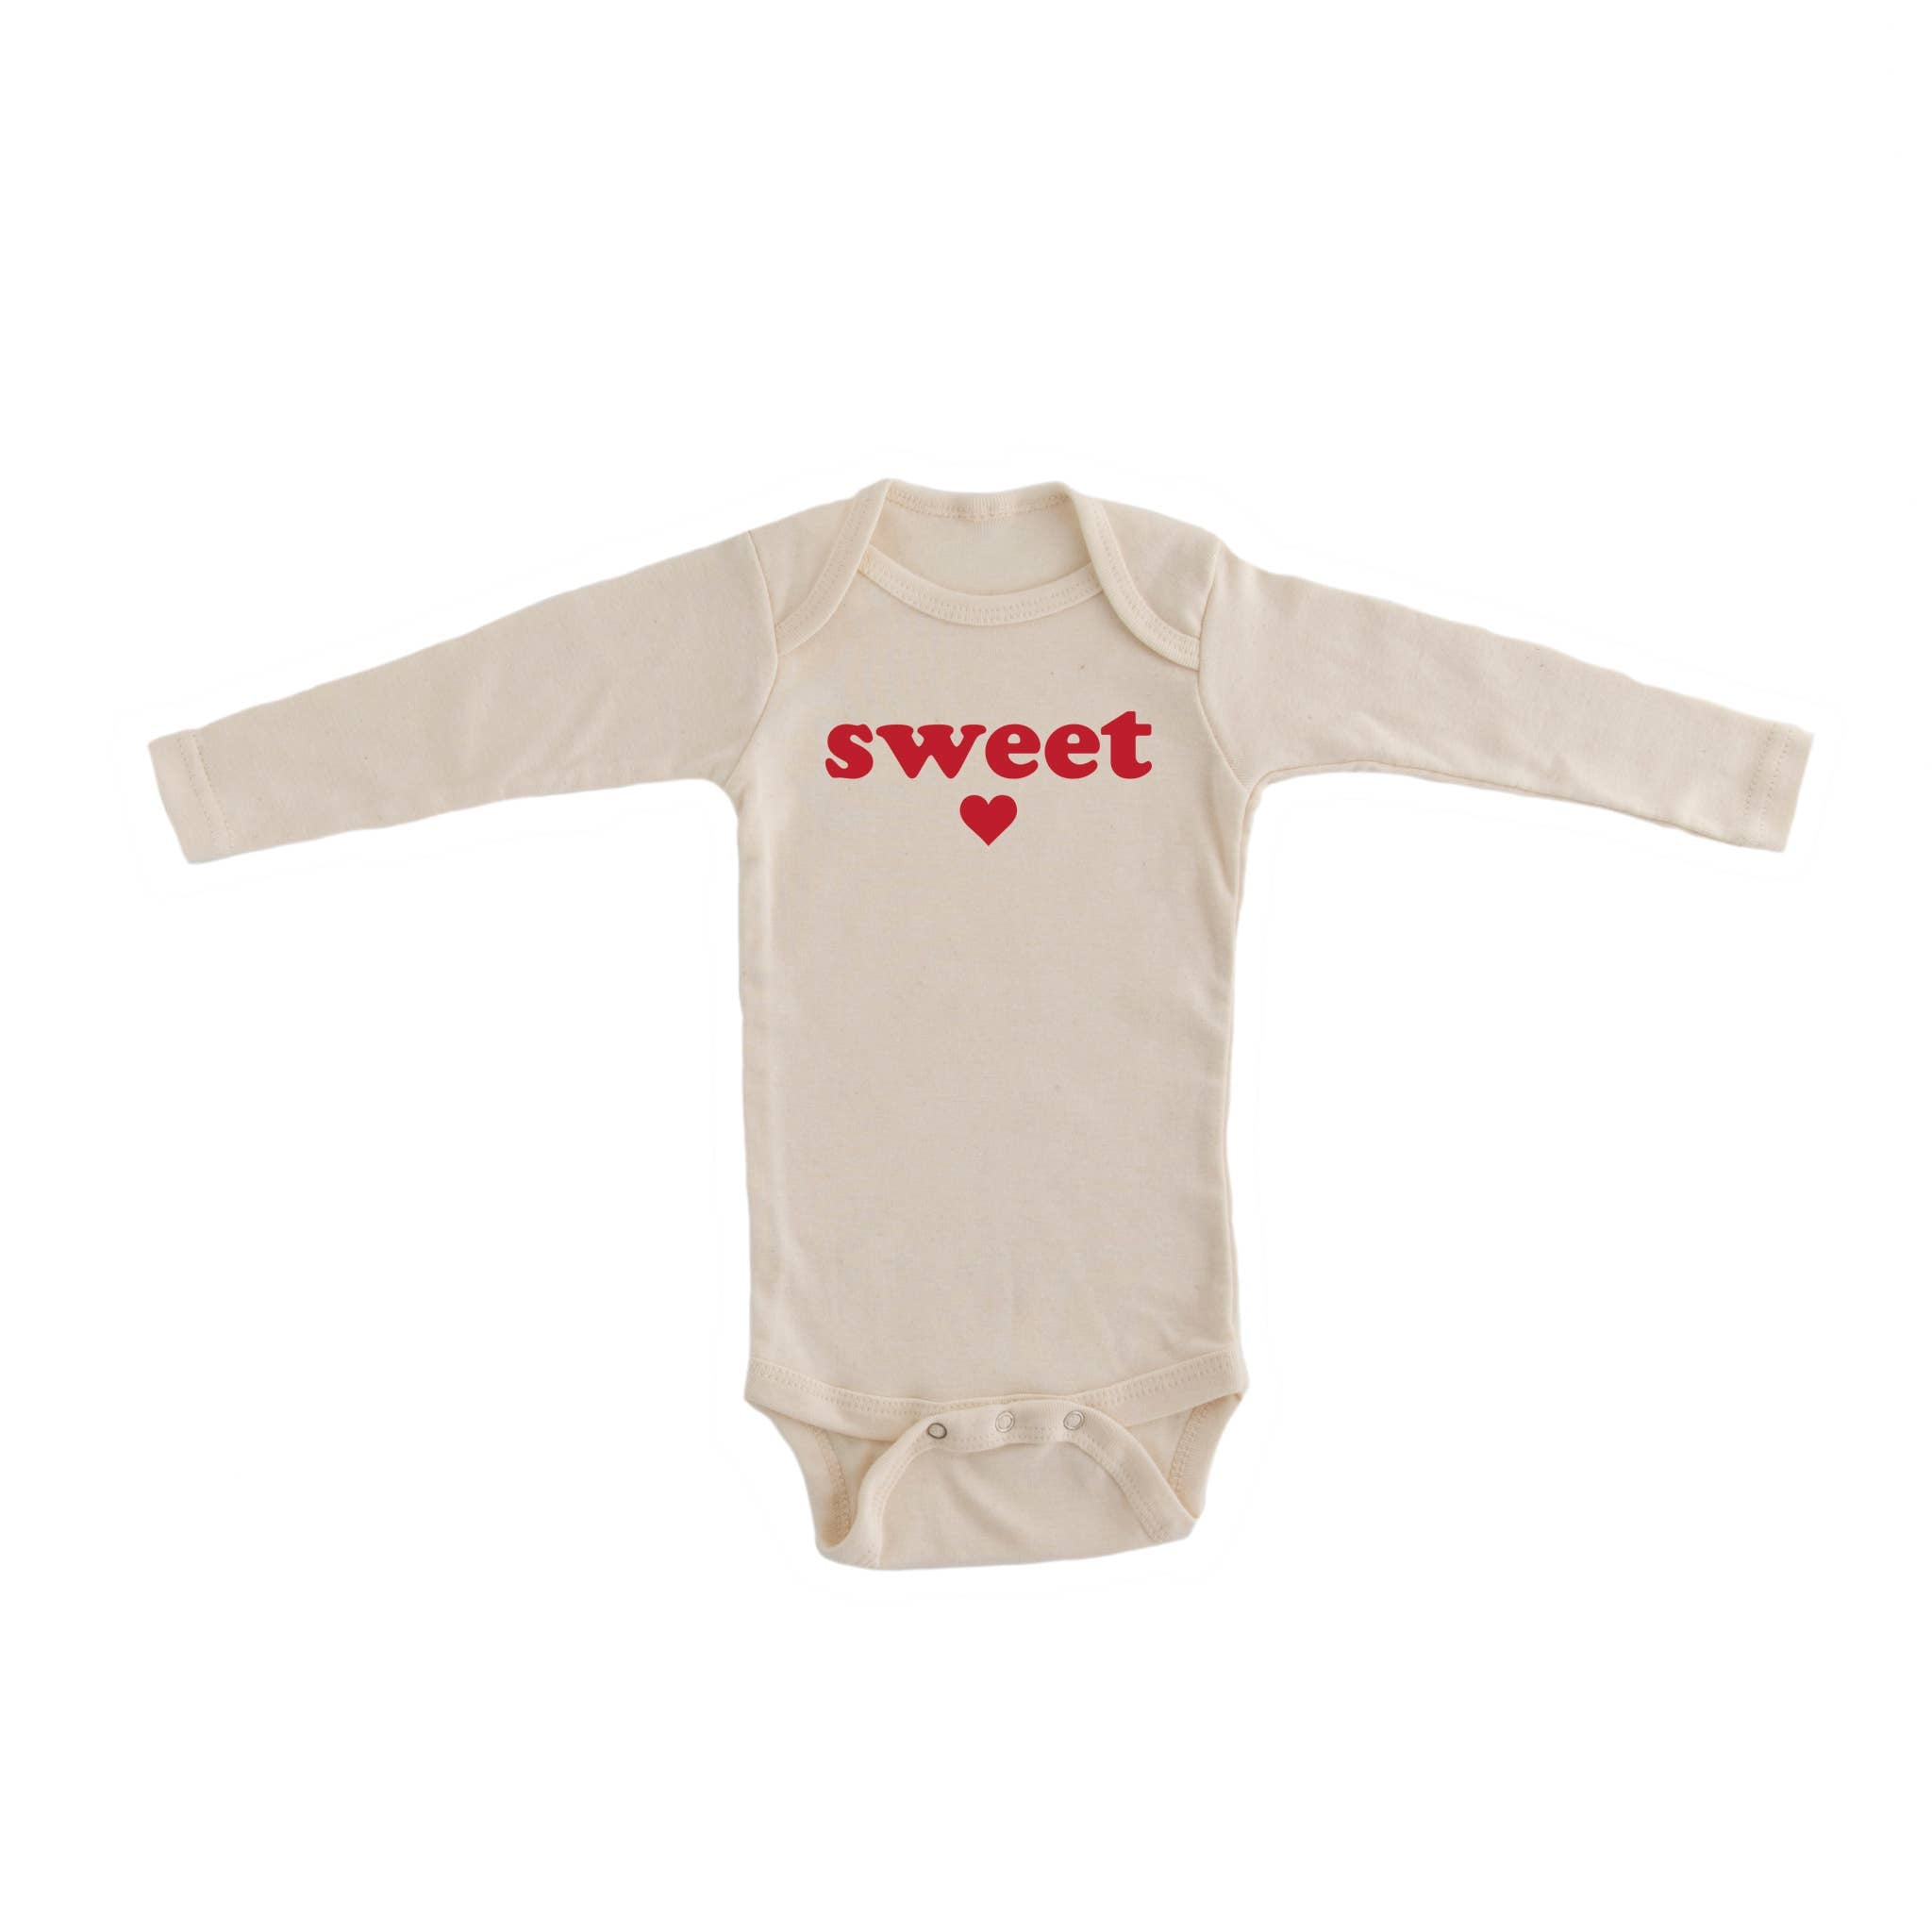 Little Faces Apparel - Red Sweetheart Organic Bodysuit